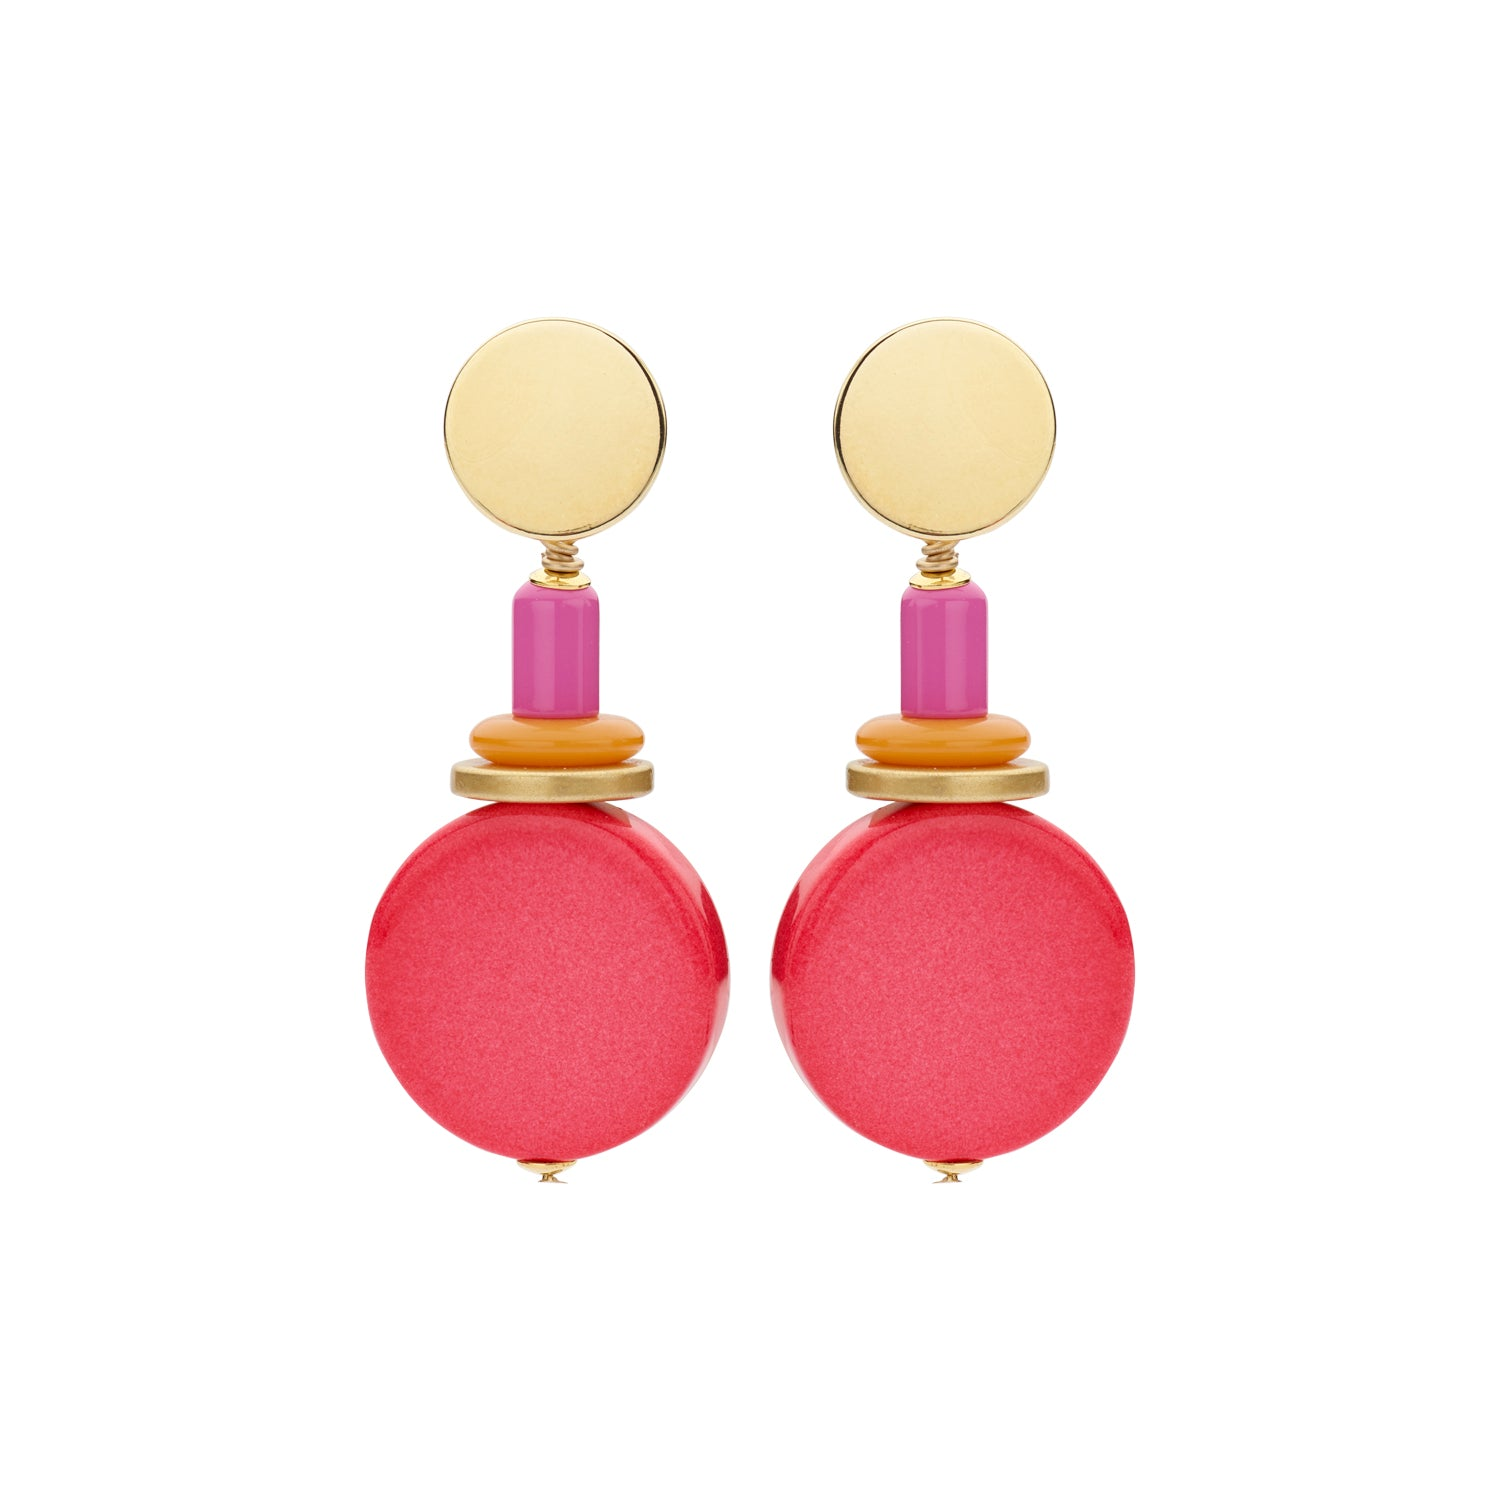 Naomi disk flat coral earrings - Souvenirs de Pomme